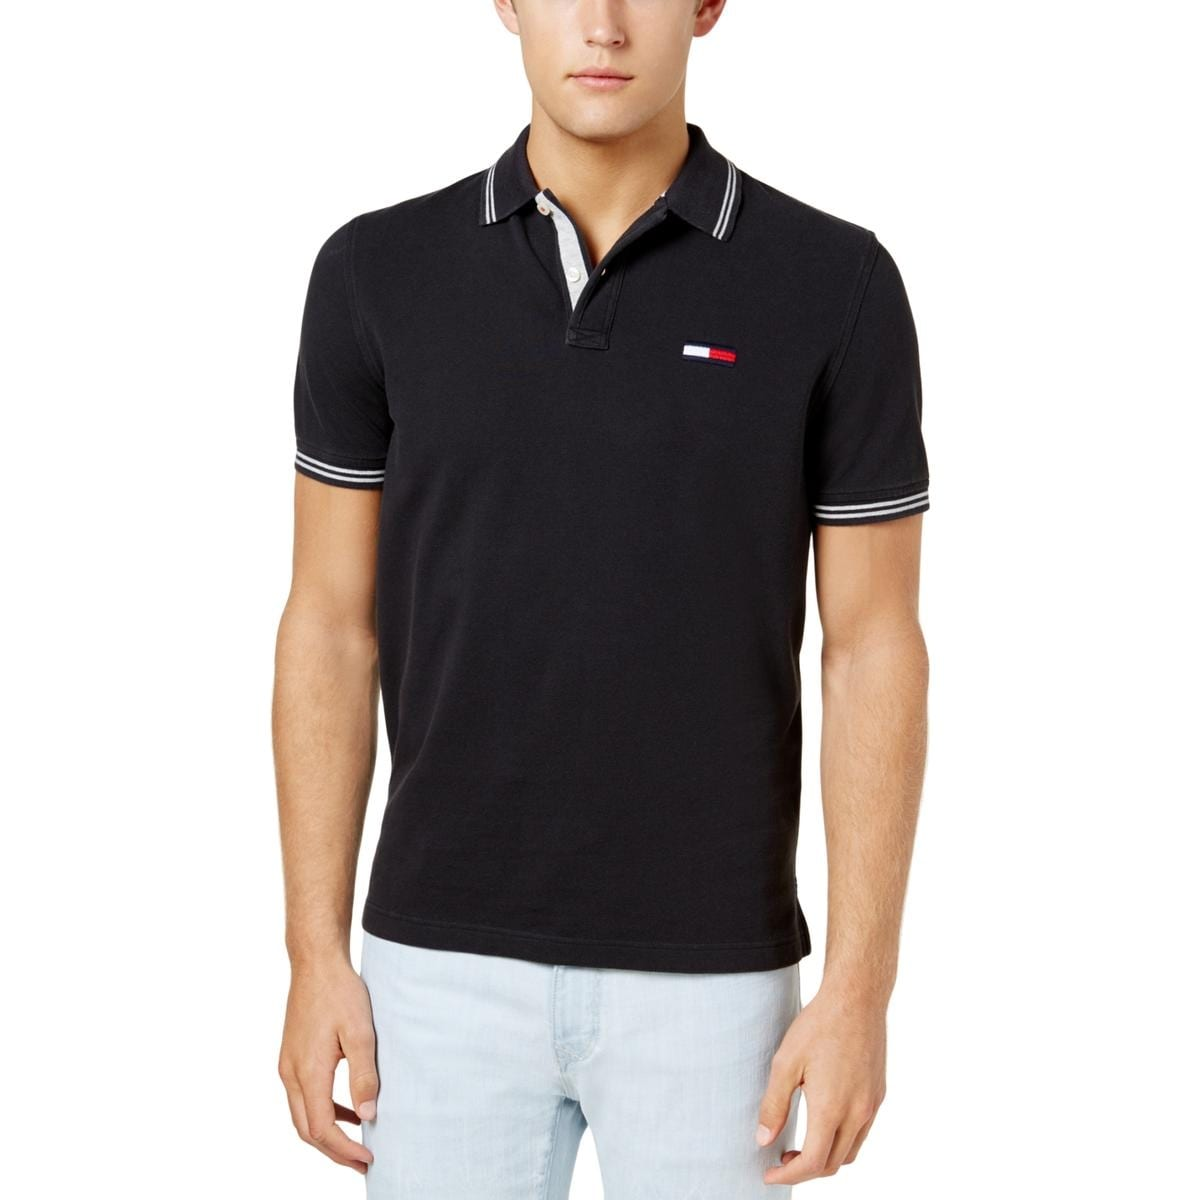 de548f9a Shop Tommy Hilfiger Mens Polo Shirt Casual Button-Down Neck - Free Shipping  On Orders Over $45 - Overstock - 26389522